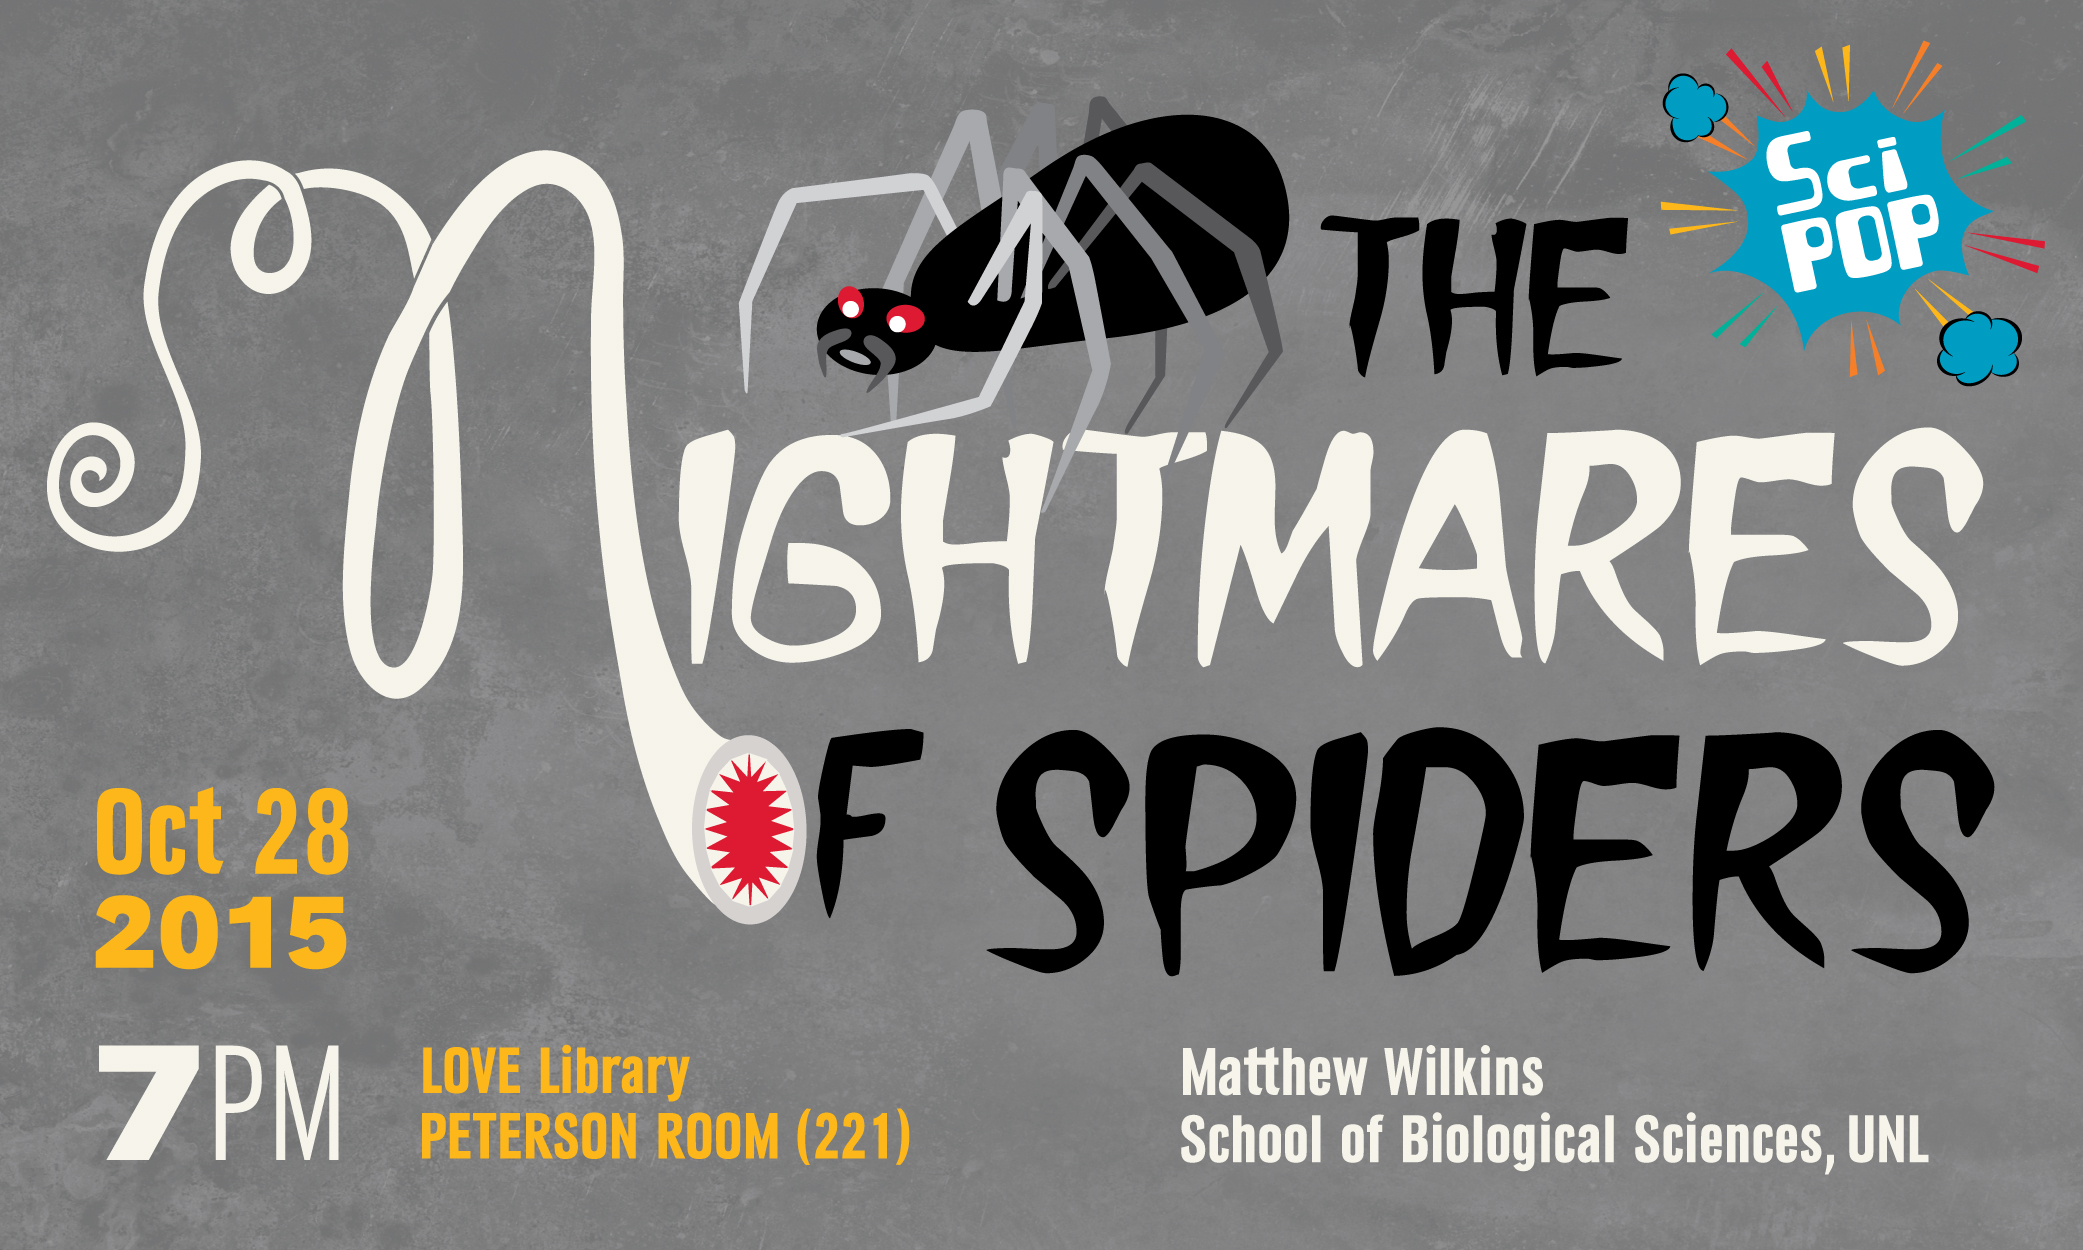 The Nightmares of Spider Promotion Image